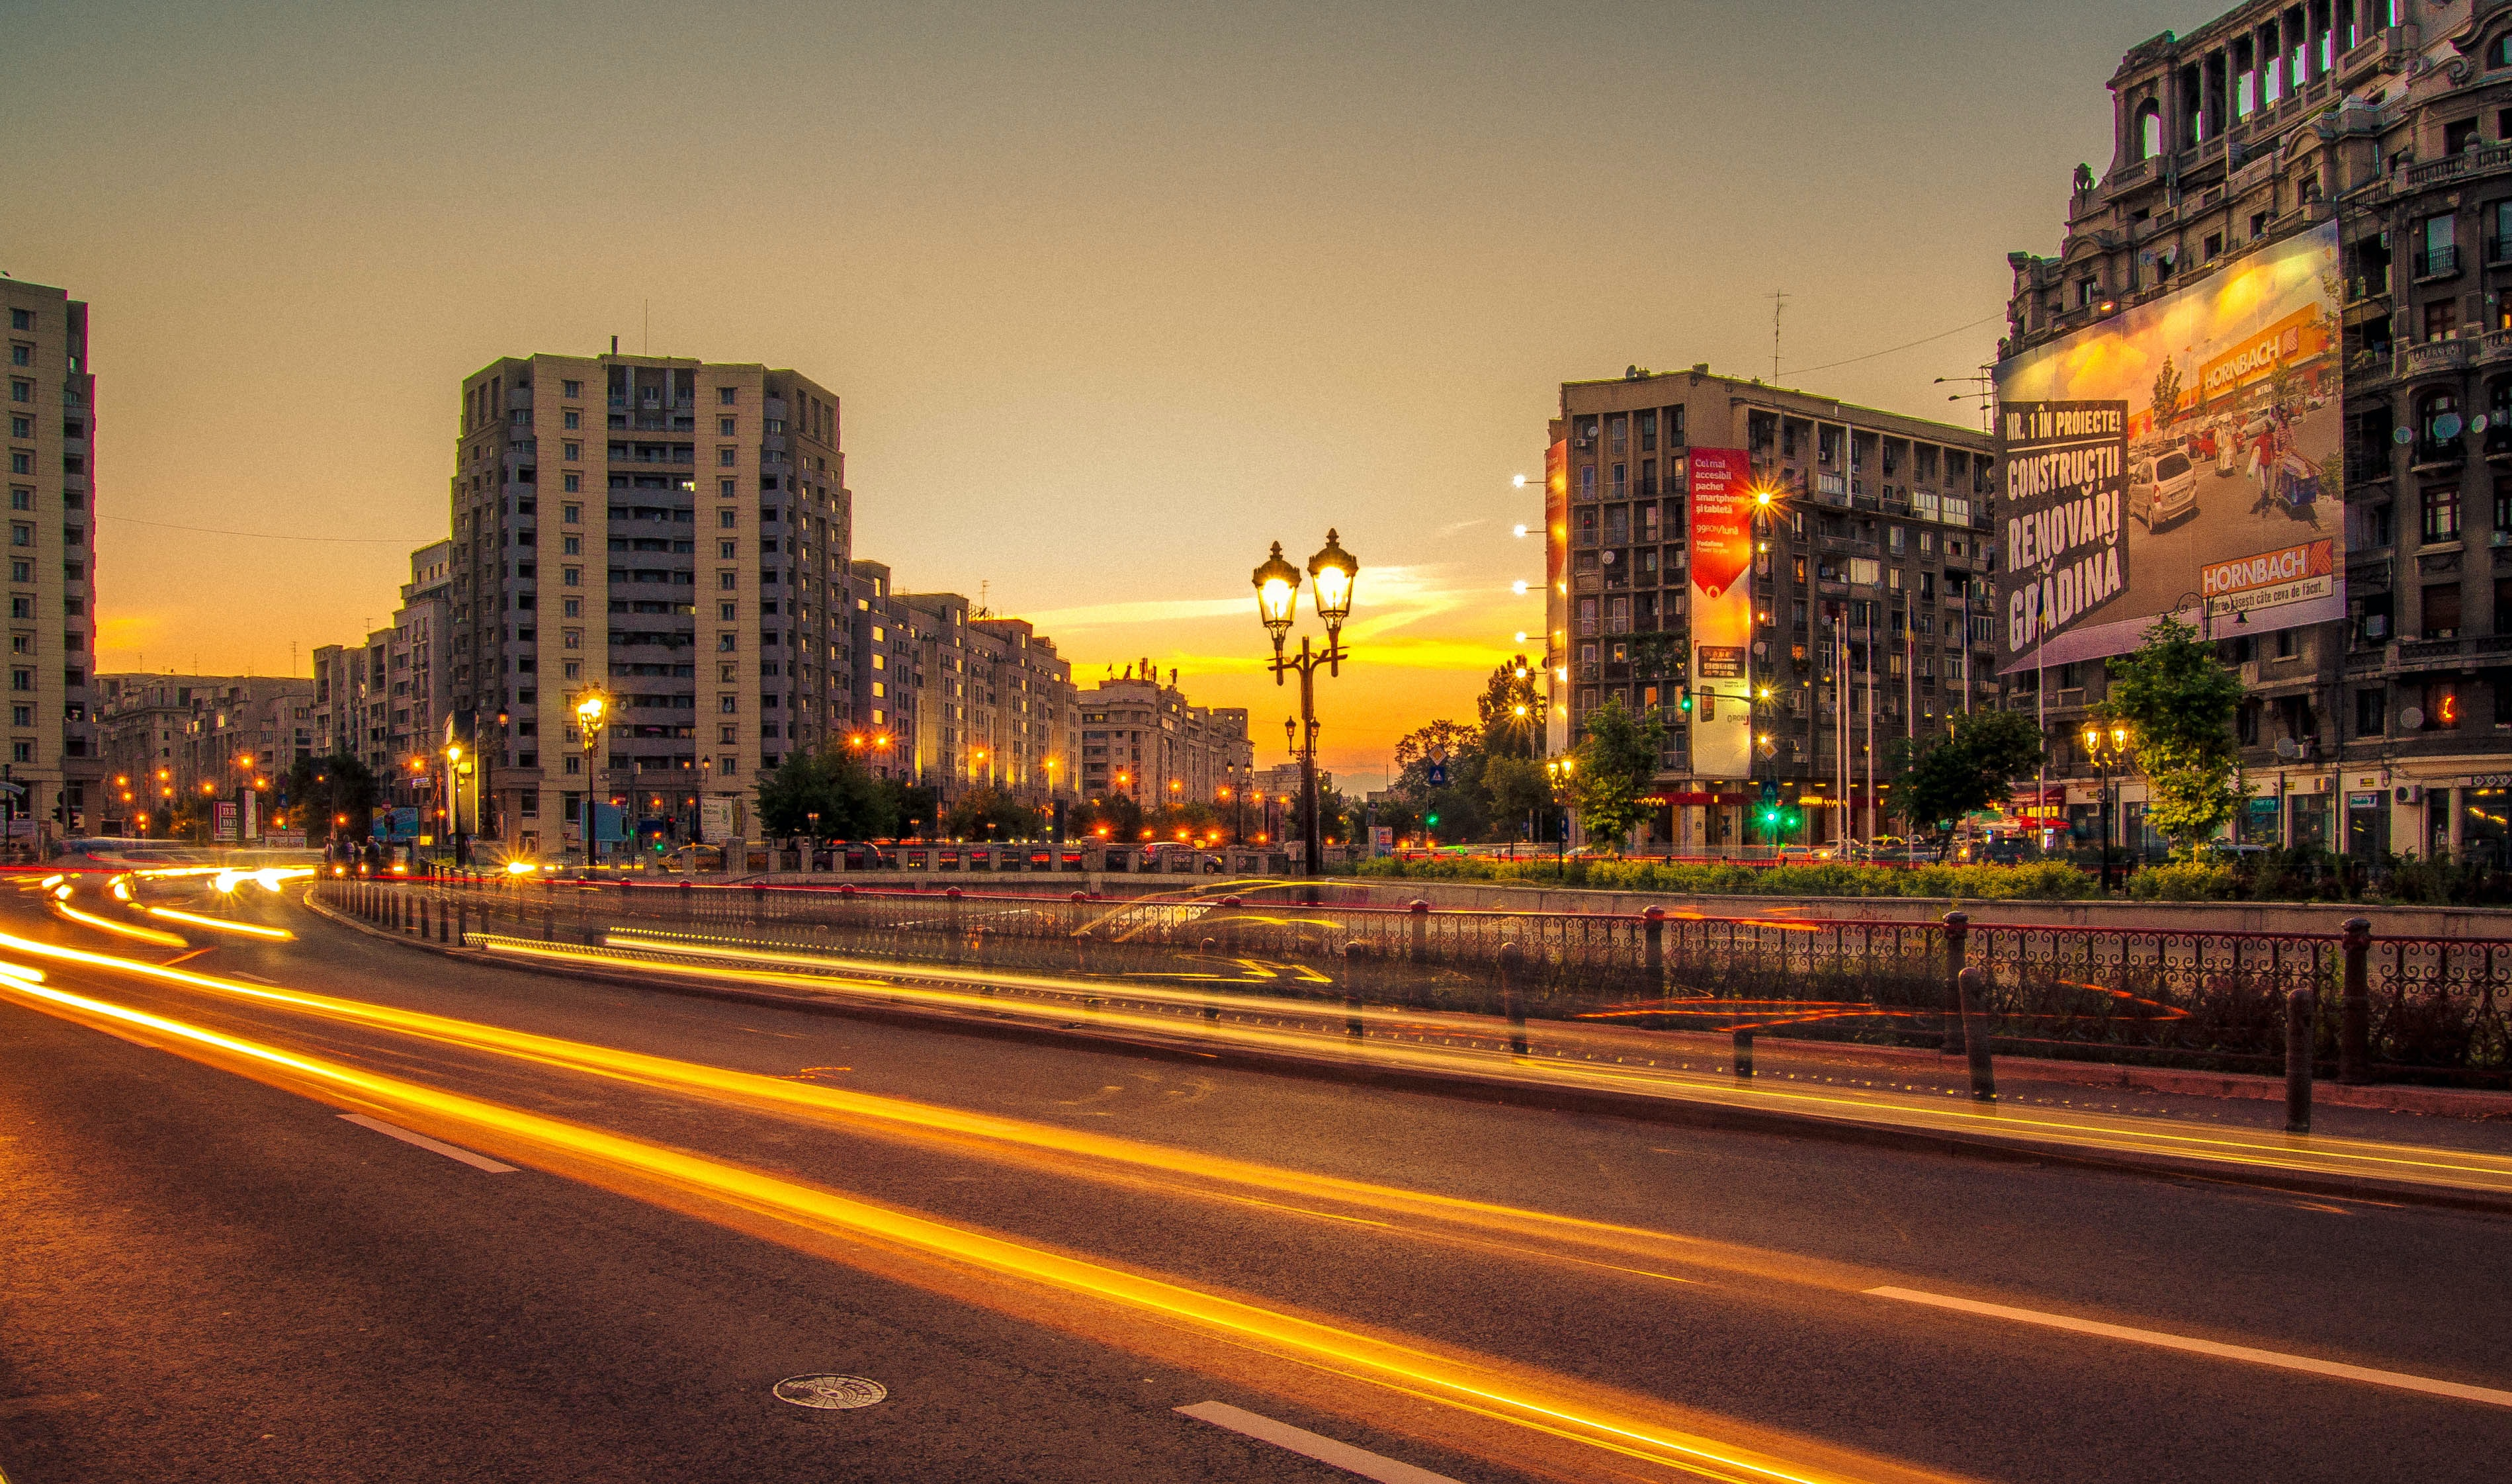 Orange light trails in the streets of a Romanian city during sunset